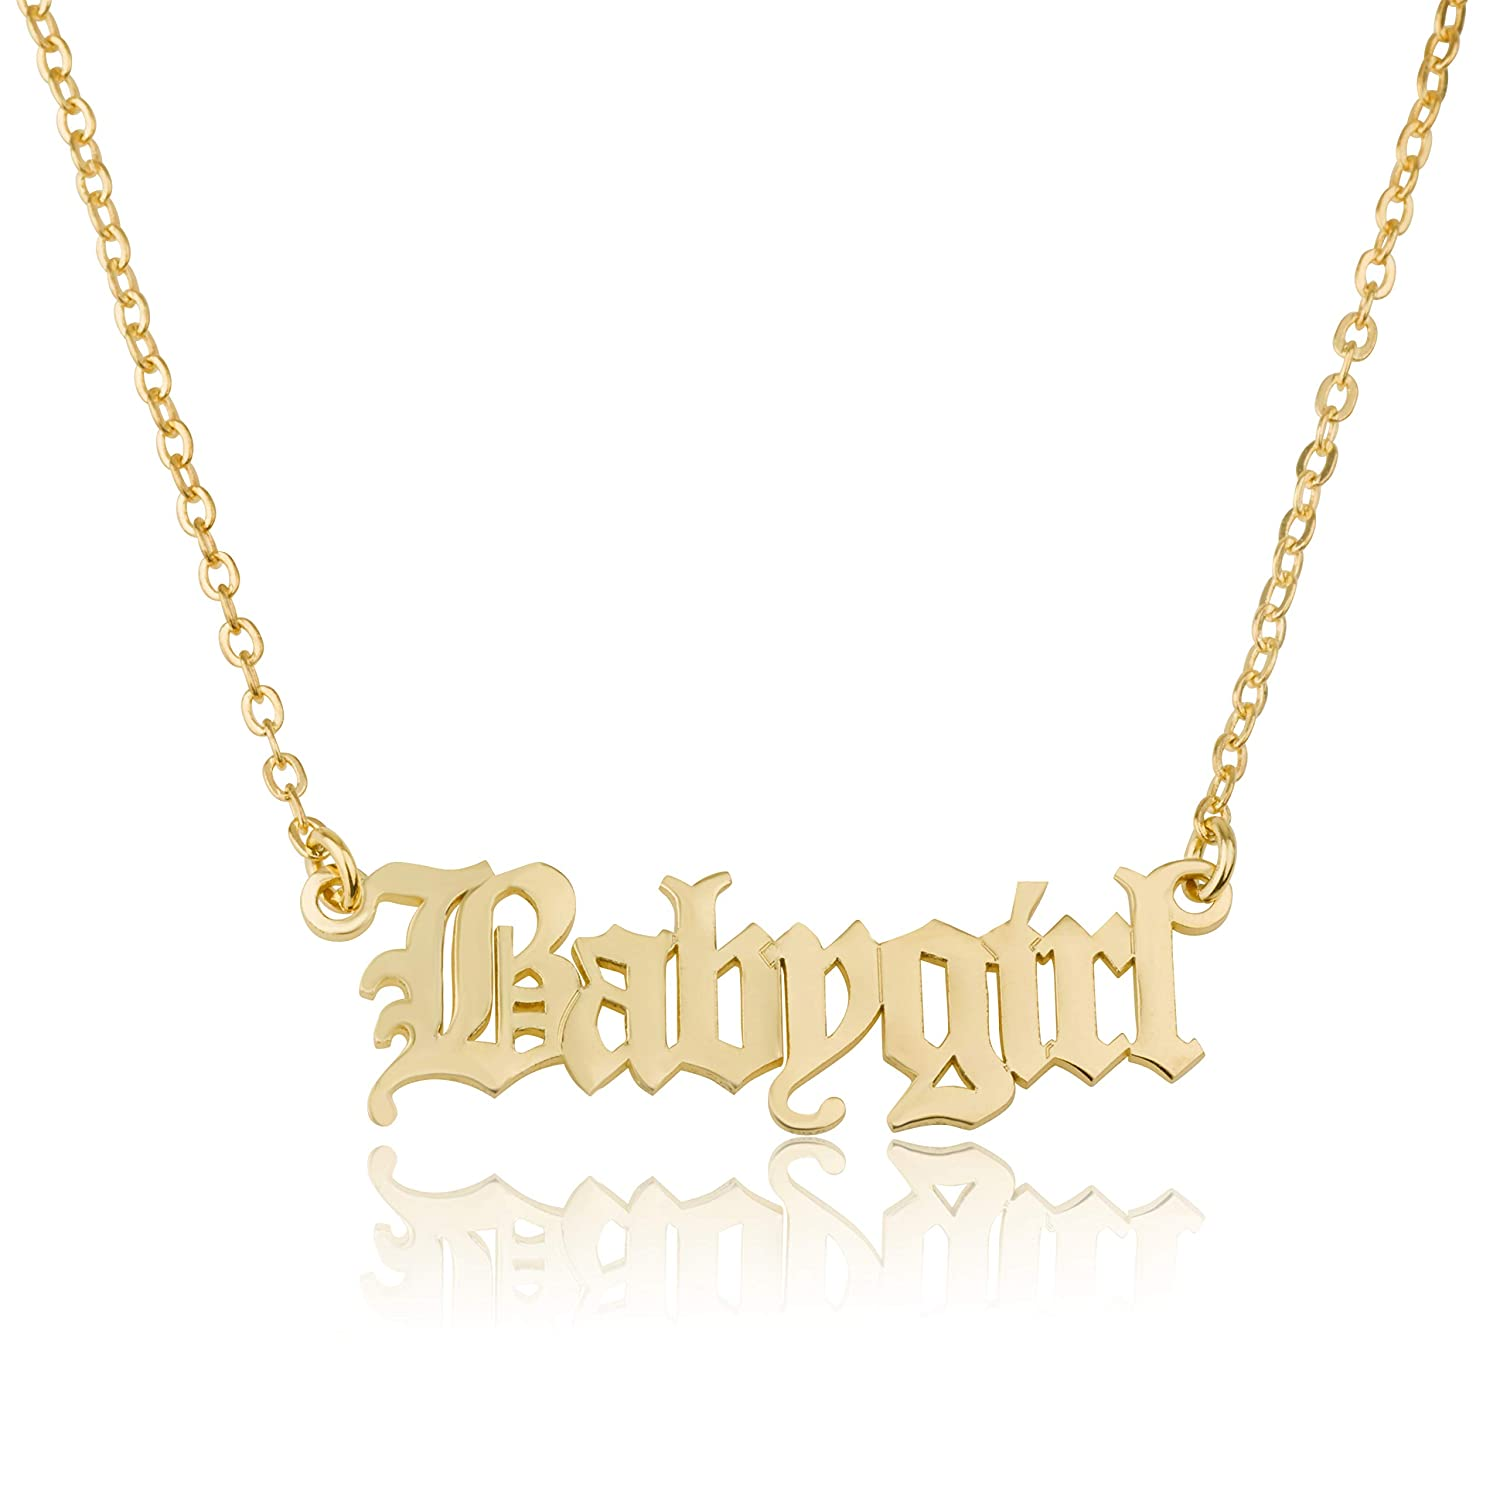 ea3a62a3d7cf6b Amazon.com: Beleco Jewelry Personalized Old English Font Name Necklace  Custom Made Sterling Silver Or Gold Plated: Jewelry